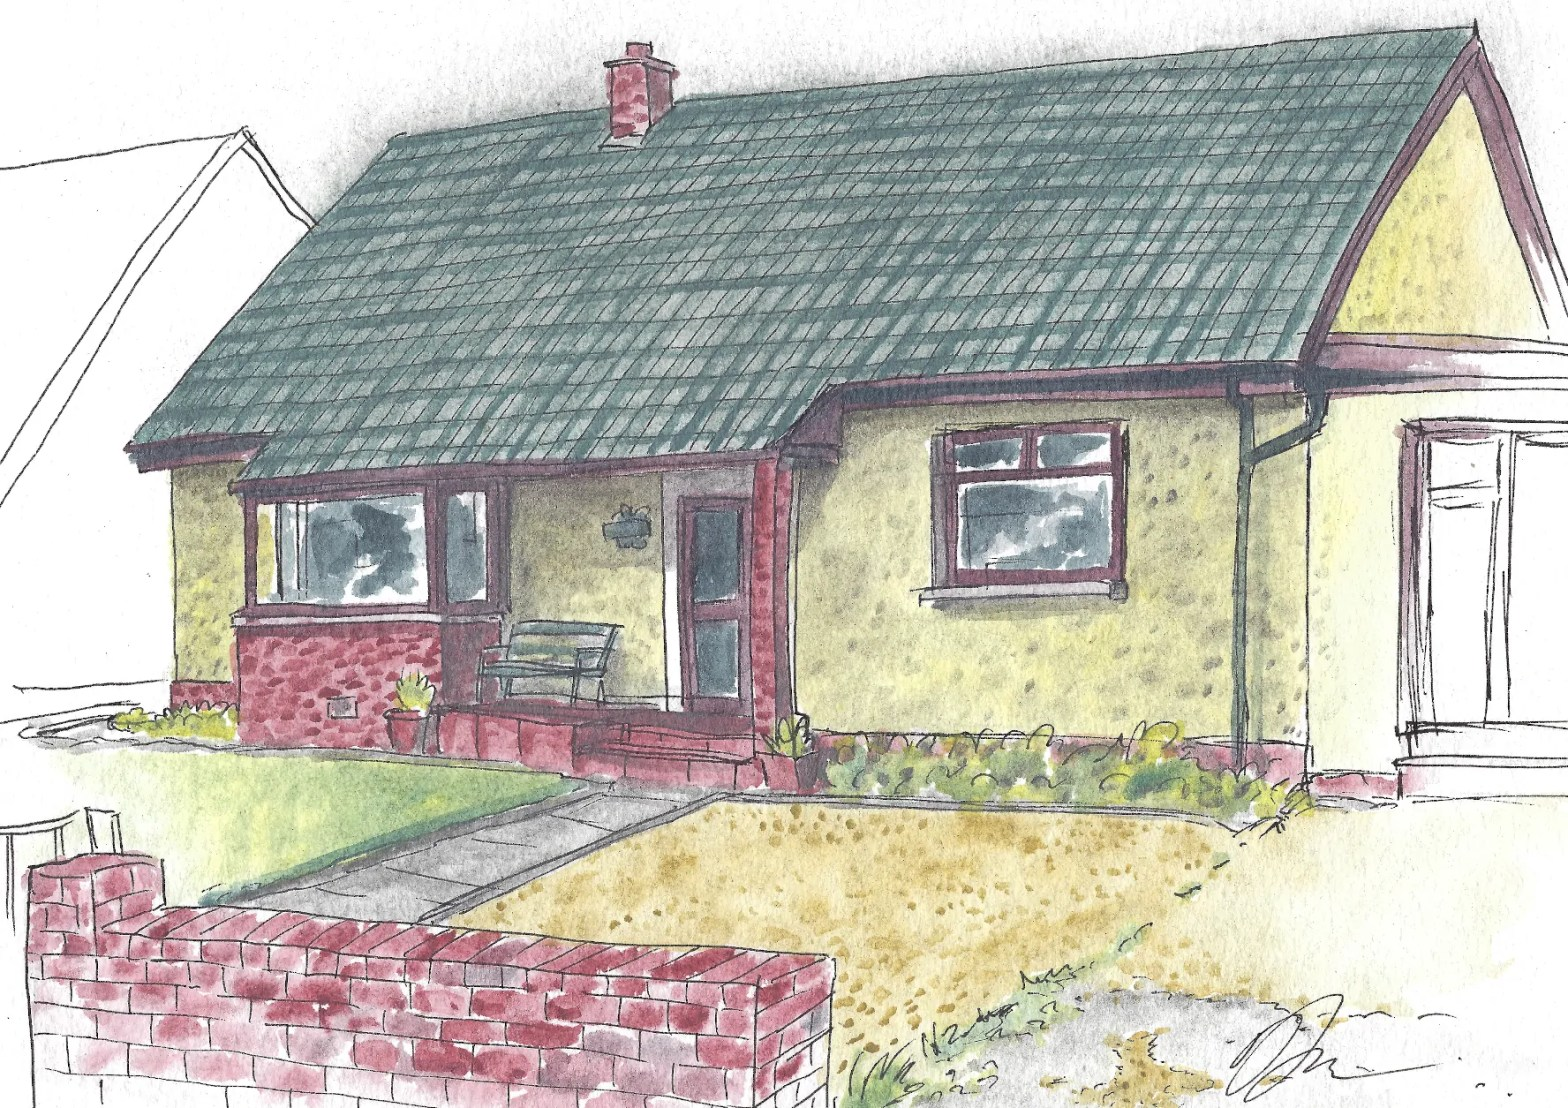 Watercolor painting of a house.